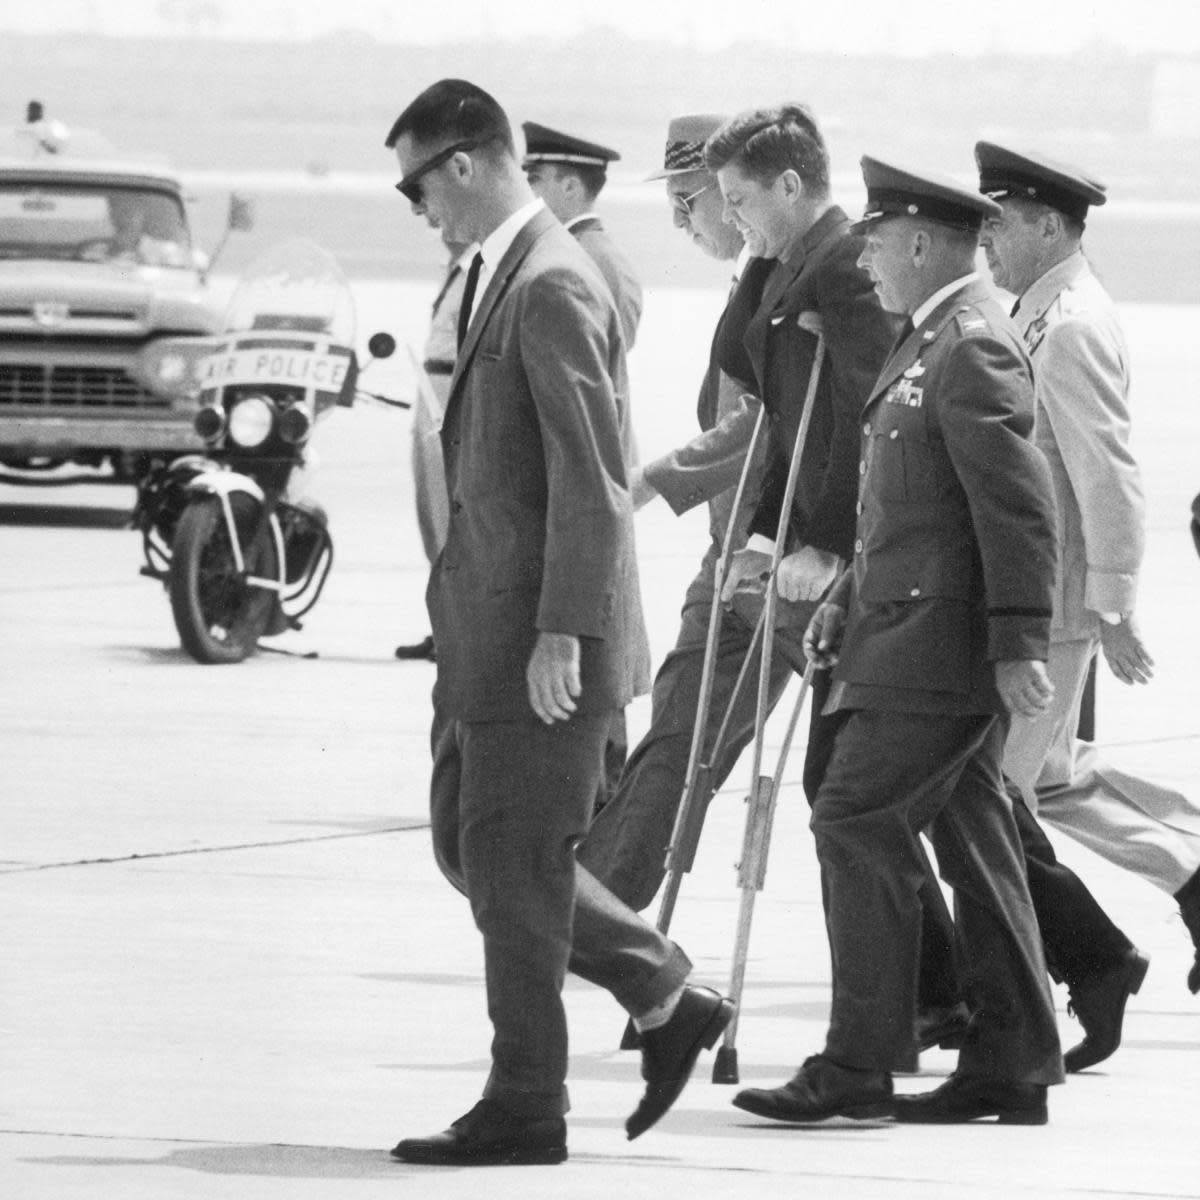 President John F. Kennedy on crutches due to back ailment. (Credit: Ed Clark/The LIFE Picture Collection/Getty Images)